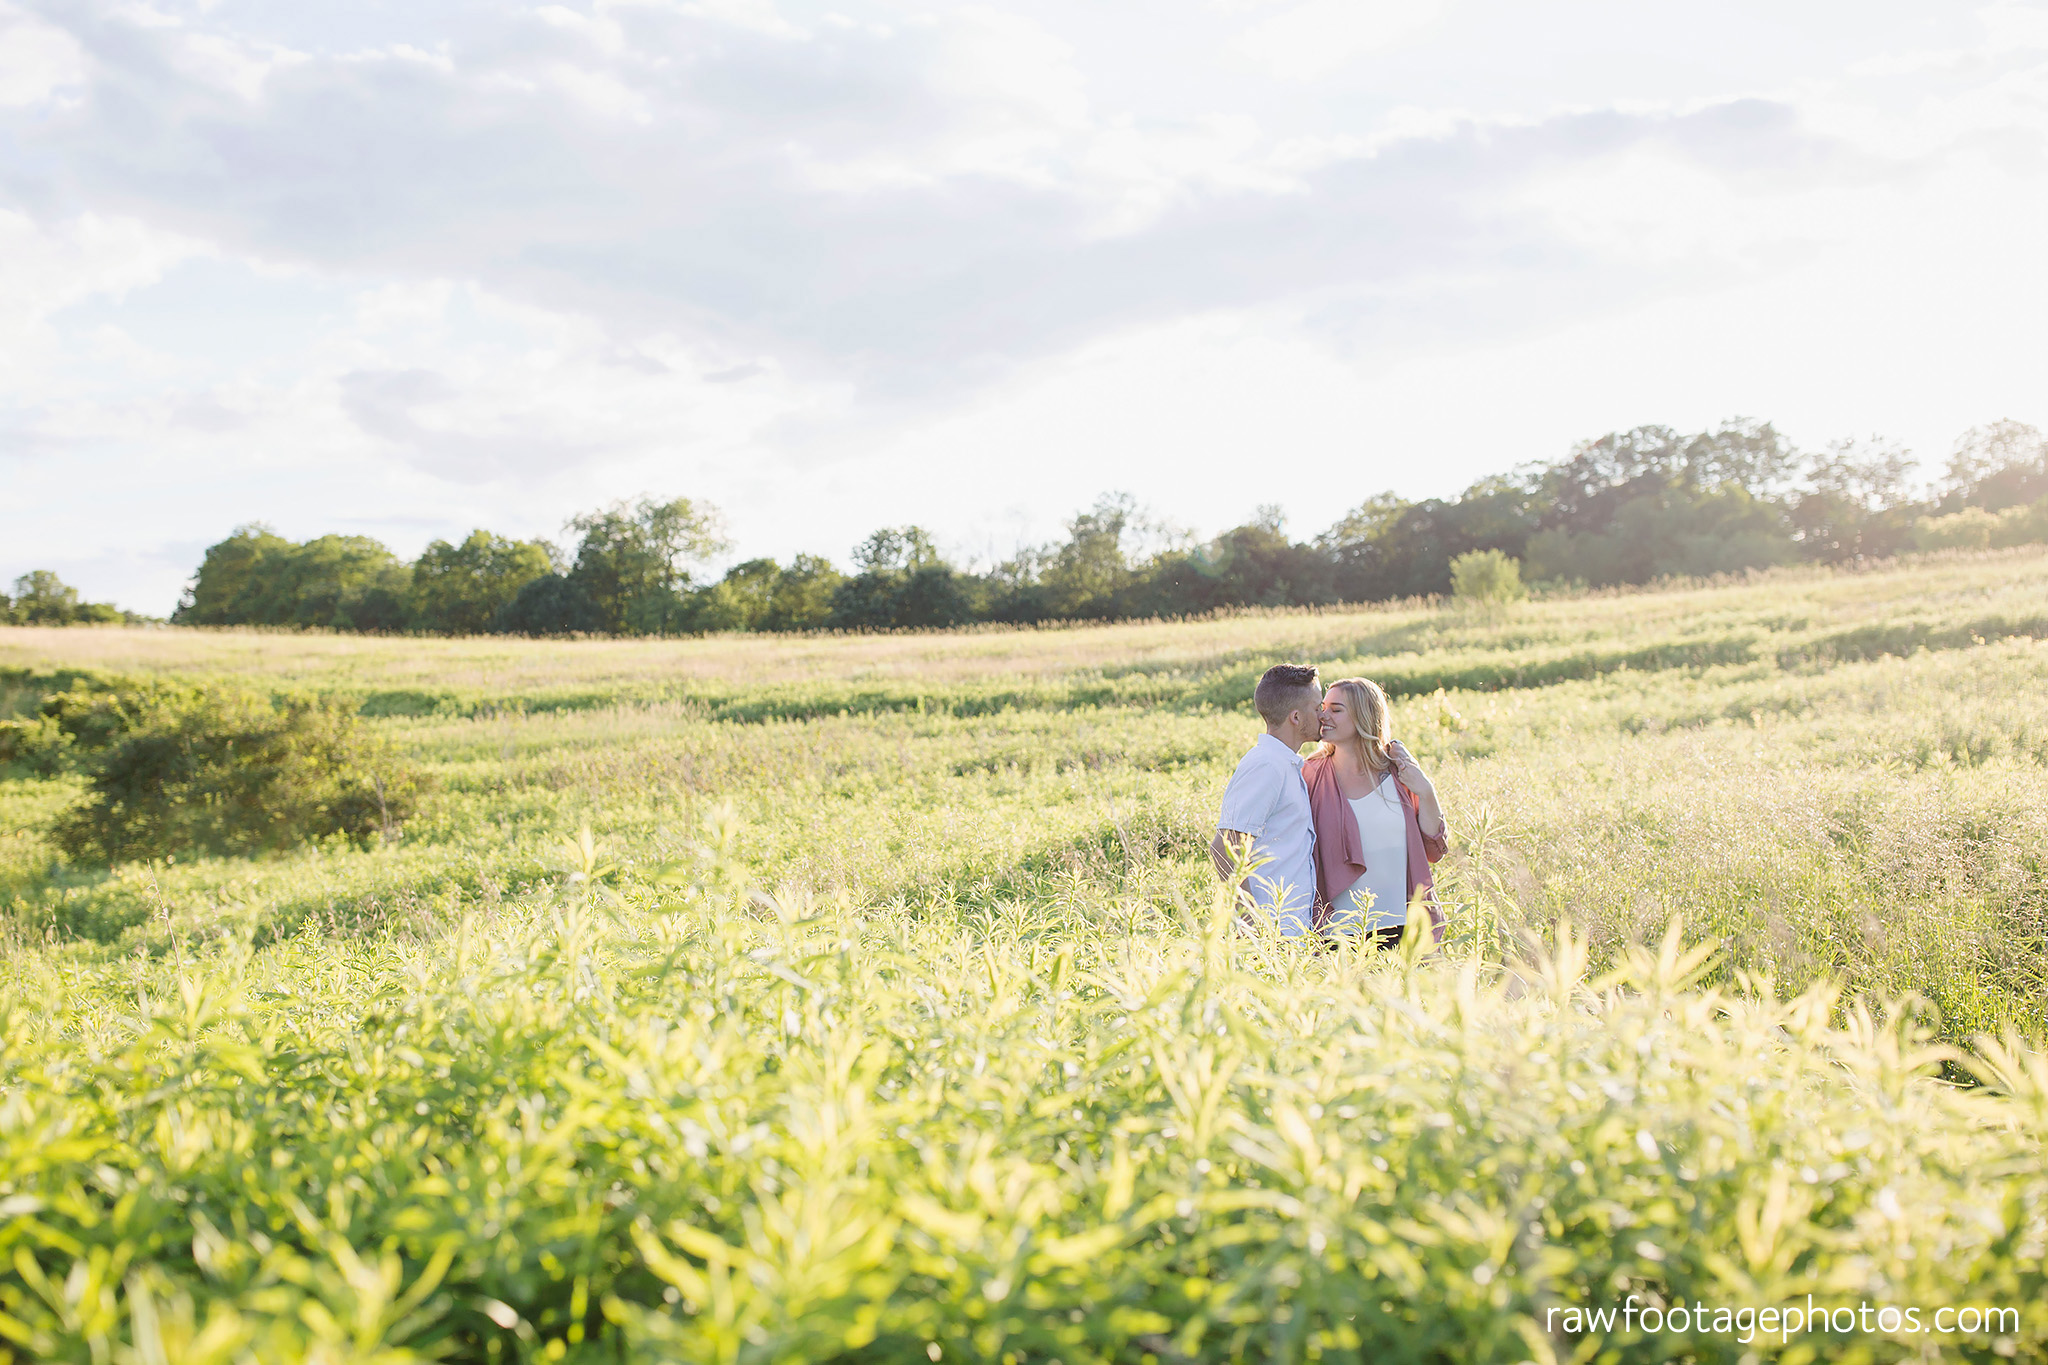 london_ontario_wedding_photographer-raw_footage_photography-mentoring-workshop-golden_hour-engagement_session016.jpg